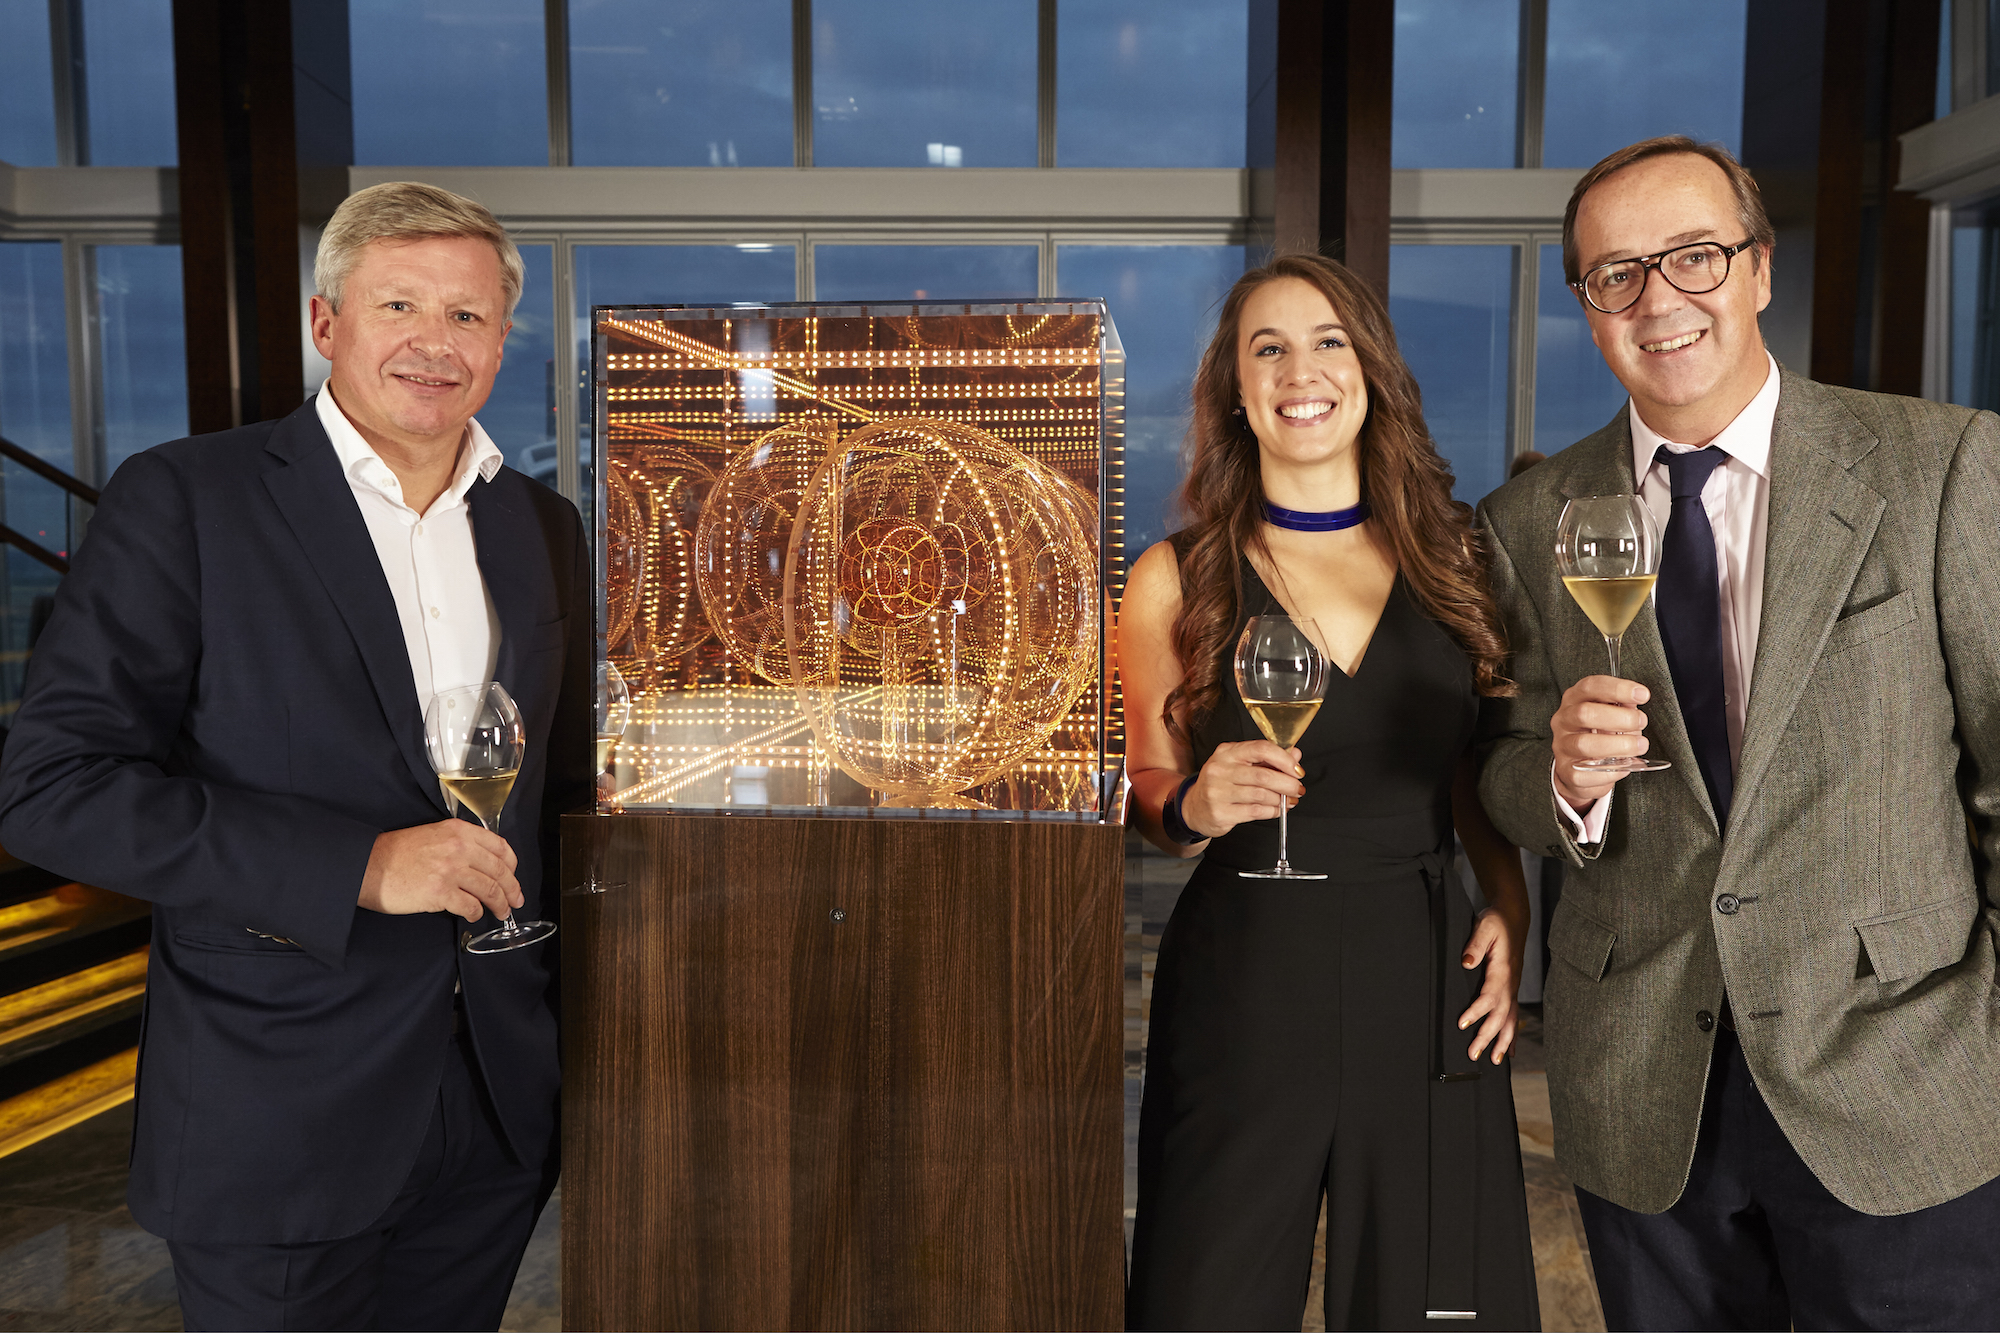 Roederer's Chairman, Frederic Rouzaud and Chef de Cave, Jean-Baptiste with artist, Aphra Shemza photographed by David Wilman at the Global Launch event.